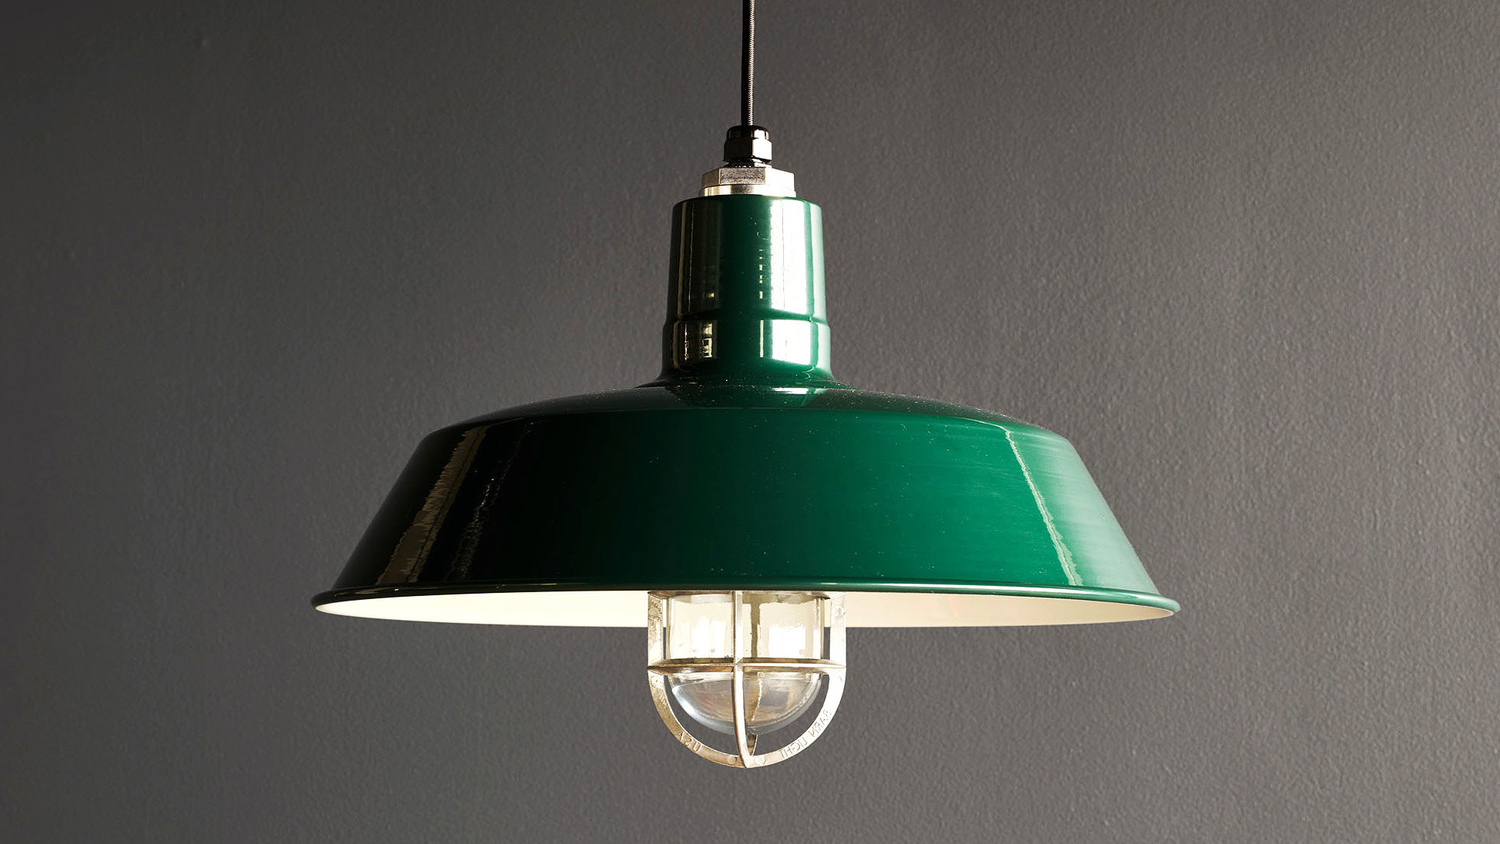 [%Snag This Hot Sale! 38% Off August Grove Crim Vintage 6 With Regard To Current Phifer 6 Light Empire Chandeliers Phifer 6 Light Empire Chandeliers With Current Snag This Hot Sale! 38% Off August Grove Crim Vintage 6 Well Liked Phifer 6 Light Empire Chandeliers In Snag This Hot Sale! 38% Off August Grove Crim Vintage 6 Most Up To Date Snag This Hot Sale! 38% Off August Grove Crim Vintage 6 In Phifer 6 Light Empire Chandeliers%] (View 1 of 20)